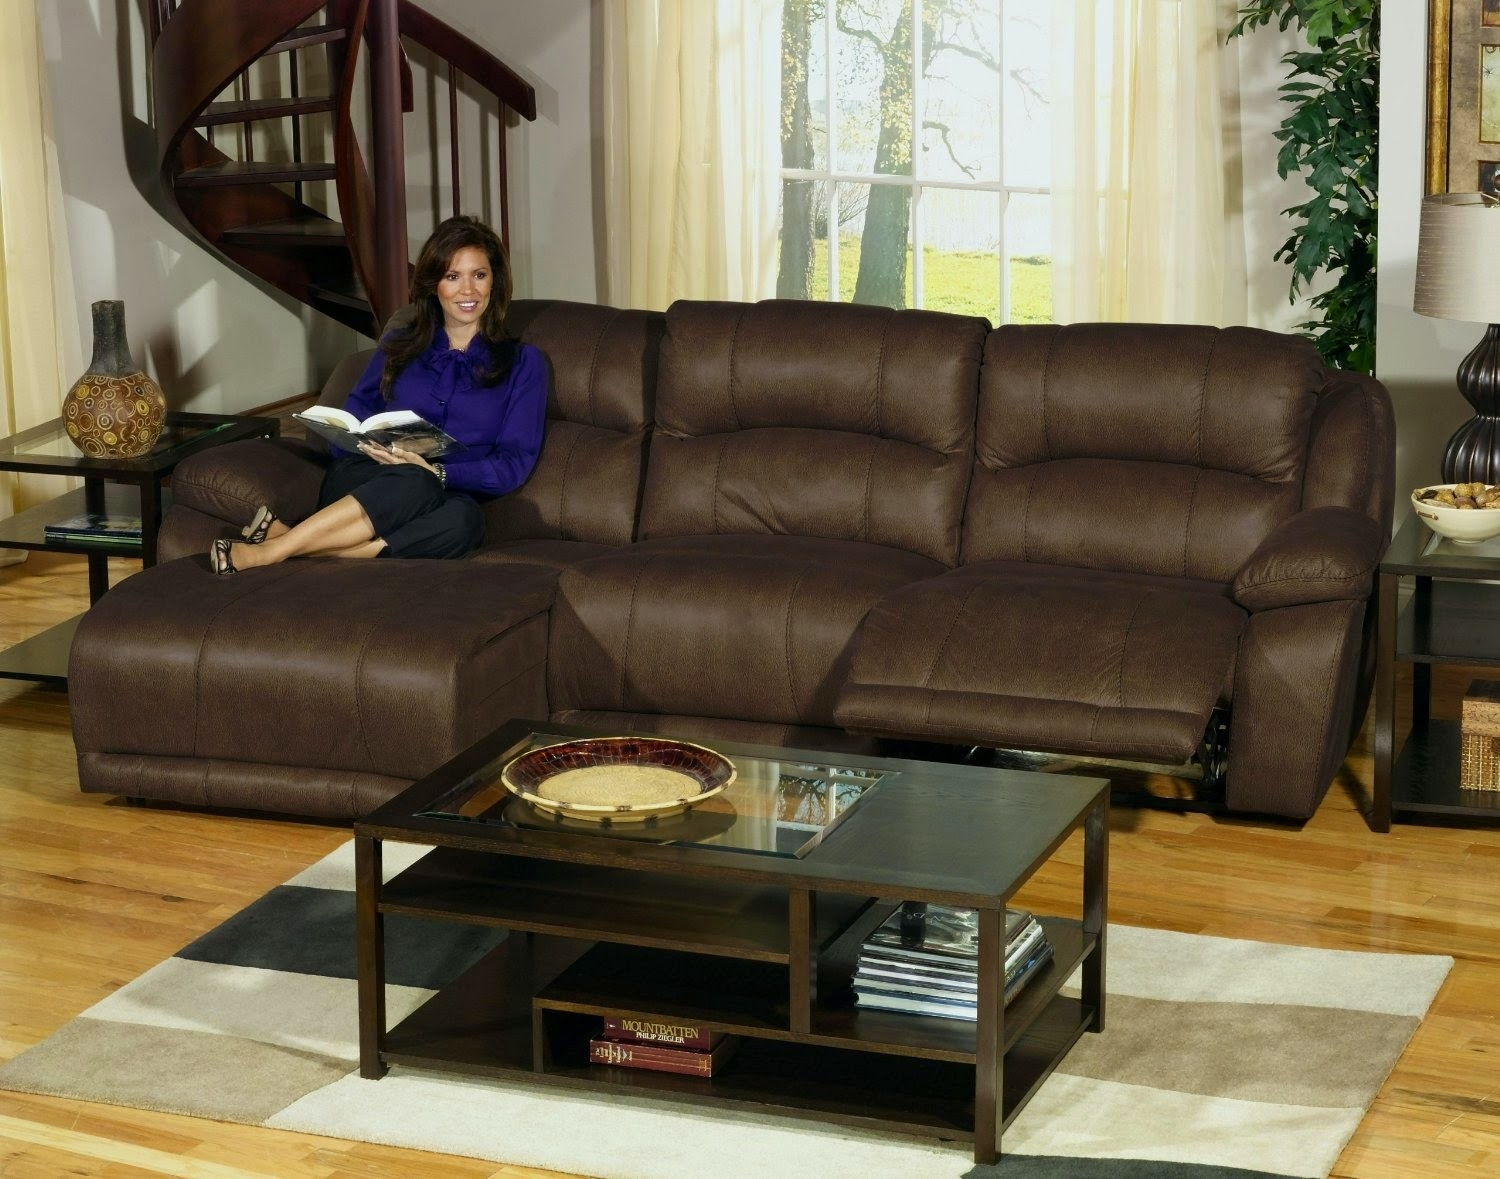 Bon Best Reclining Sofa For The Money: Small Reclining .